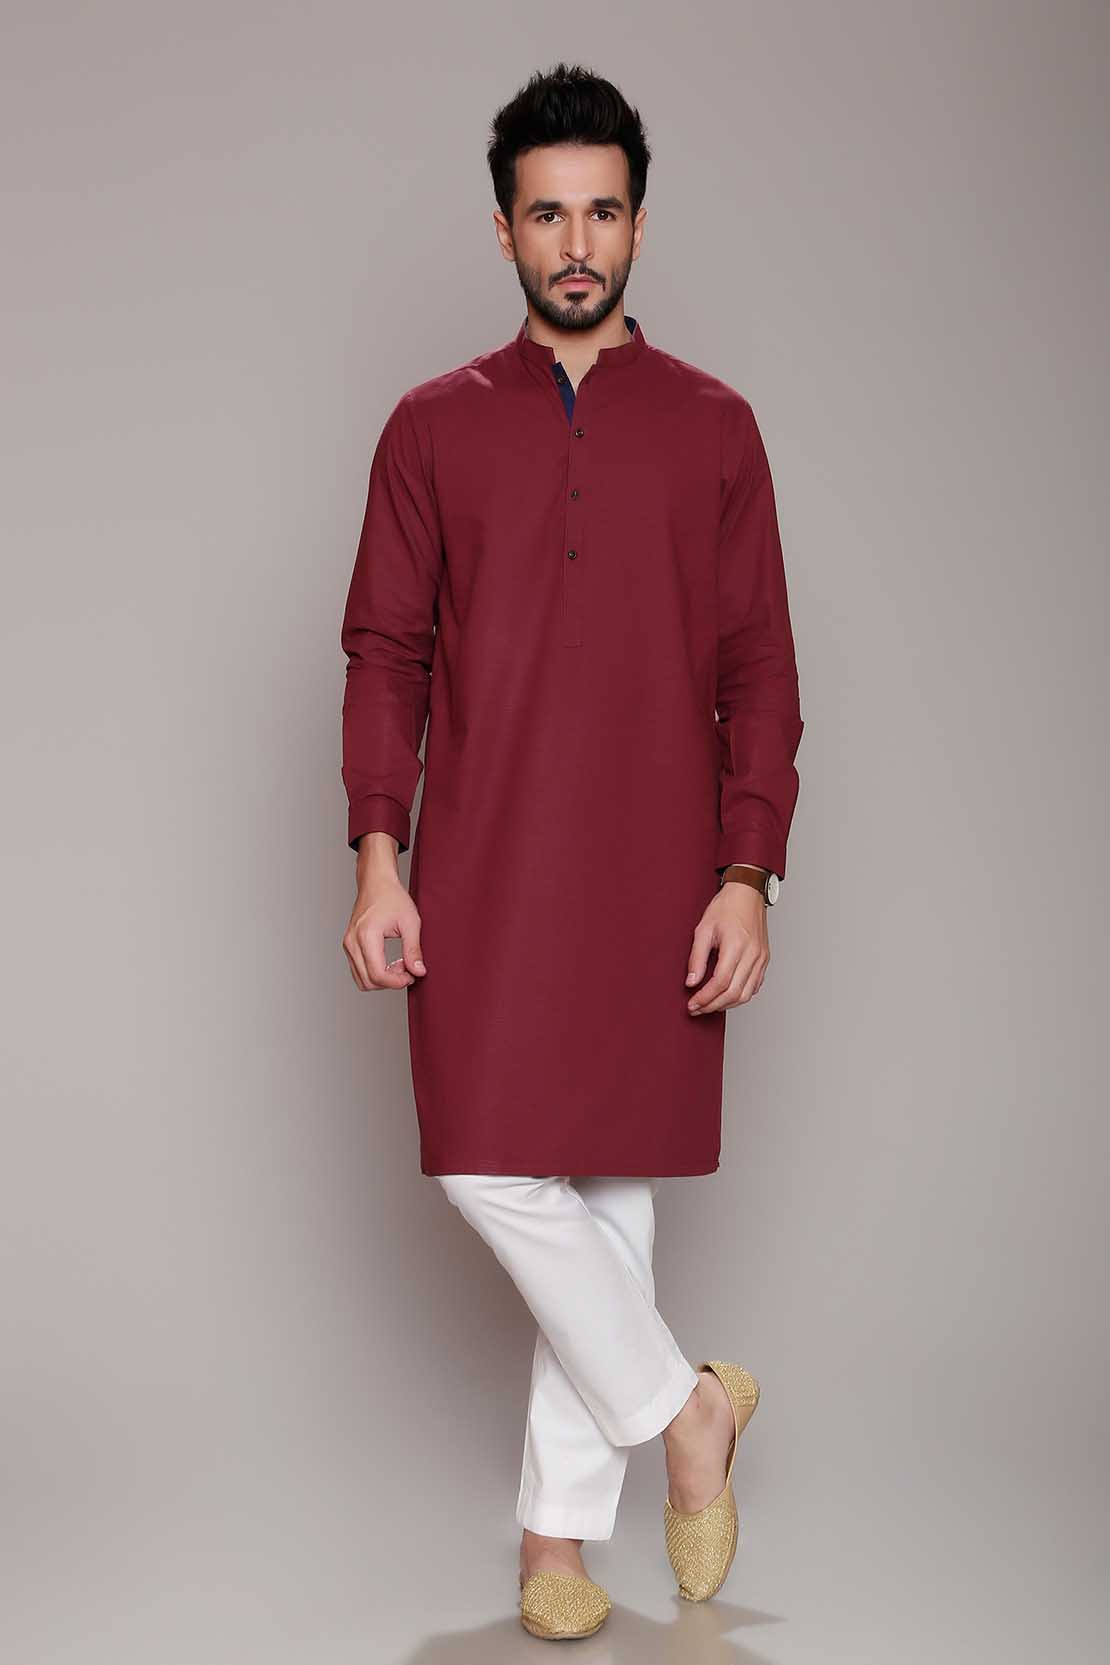 Kurta men latest styles designs